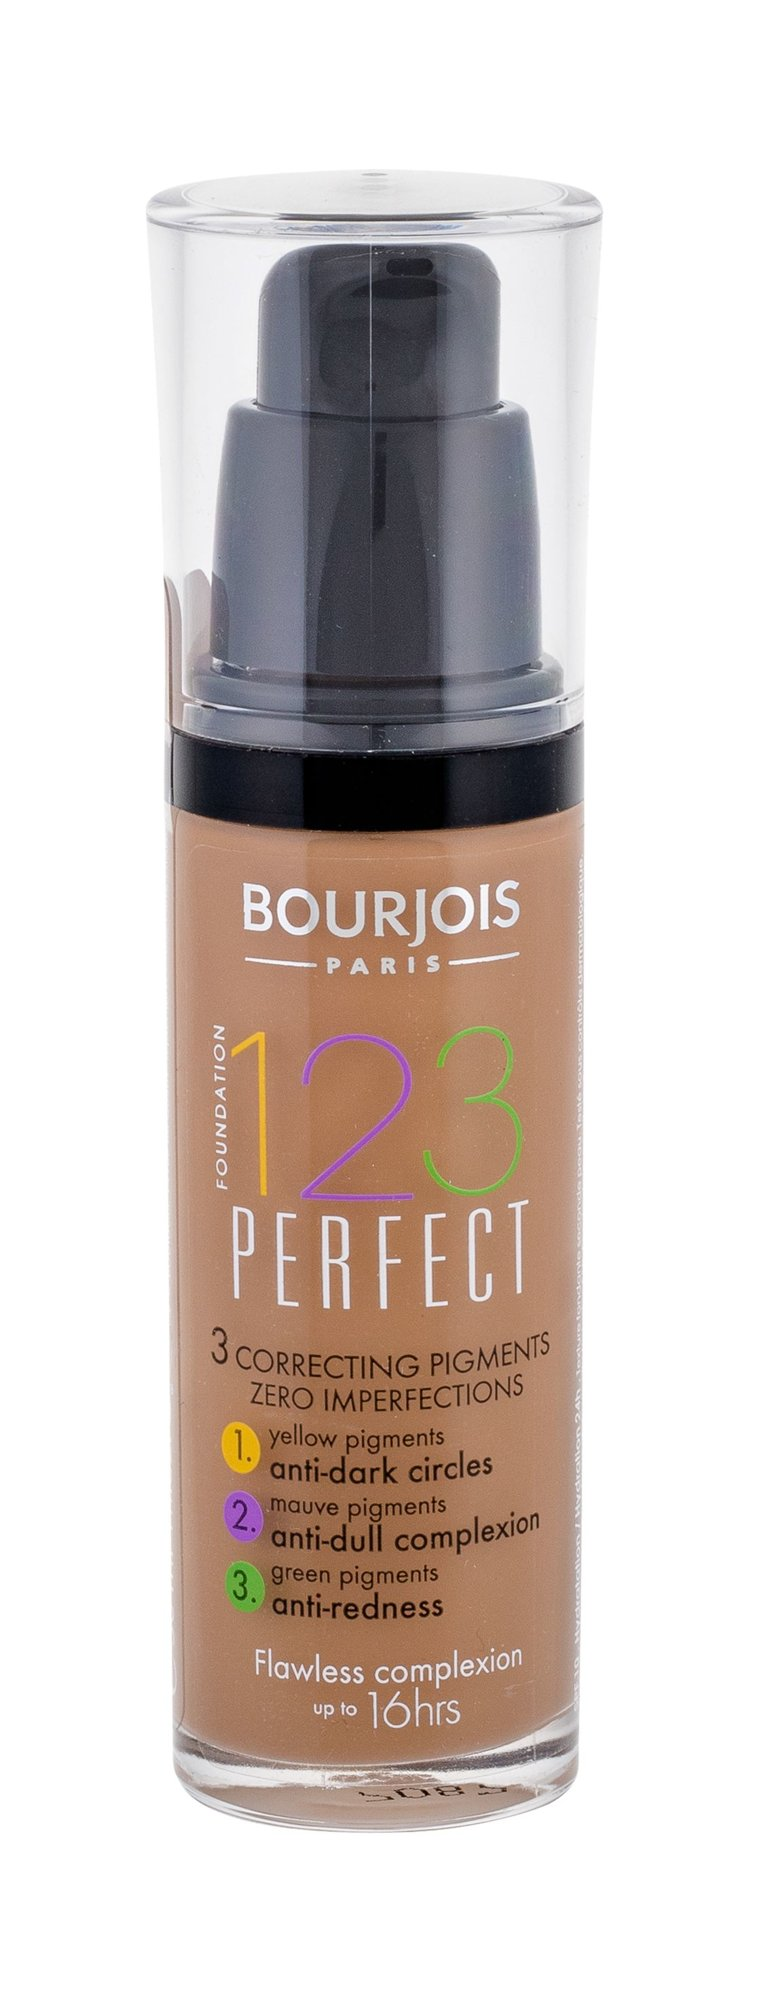 BOURJOIS Paris 123 Perfect Cosmetic 30ml 58 Dark Bronze